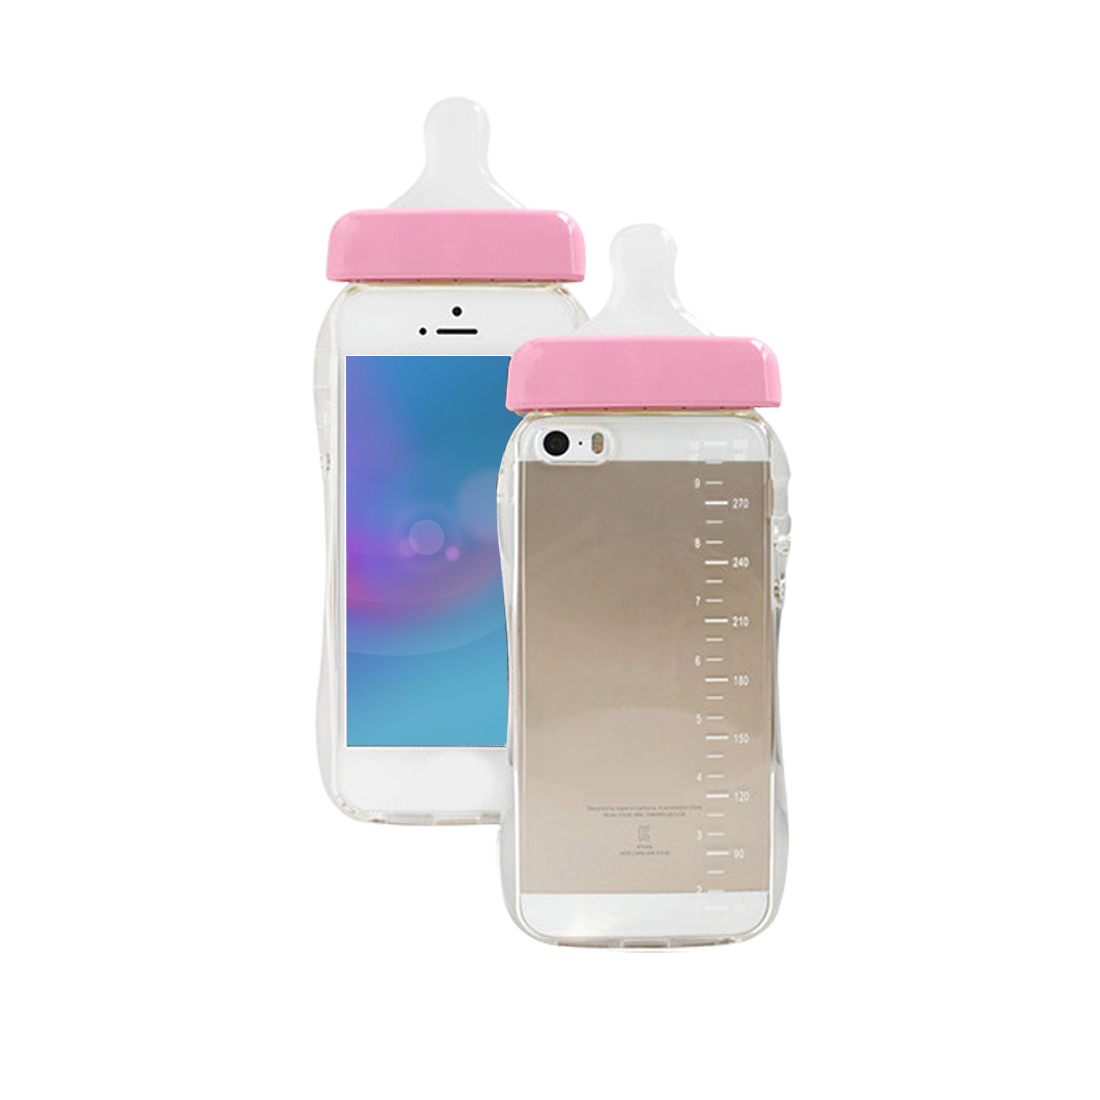 Lovely Soft Edge Phone Case For IPhone 7 Plus Protective Baby Pacifiers Bottle Shape Phone Case For IPhone 5 5s 6 6s Plus